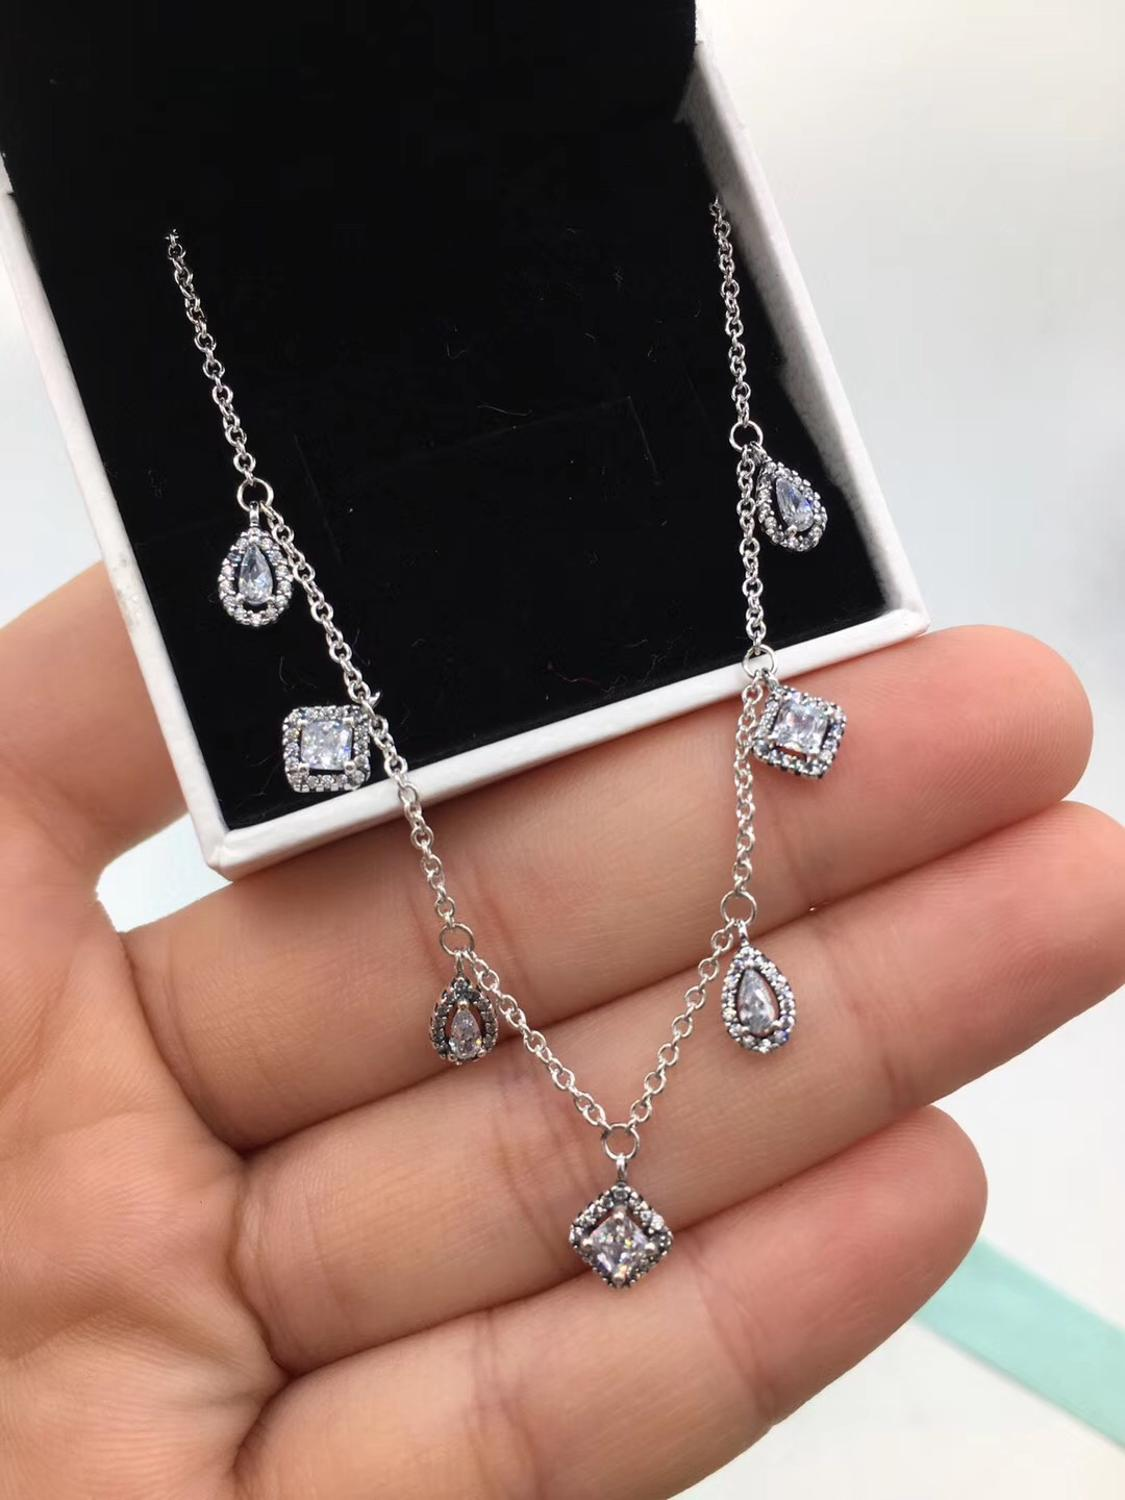 PDB XL  High Quality Original 925 Sterling Silver New 1: 1 Necklace Pop Elegant Necklace Lady Jewelry Gift Free Shipping.